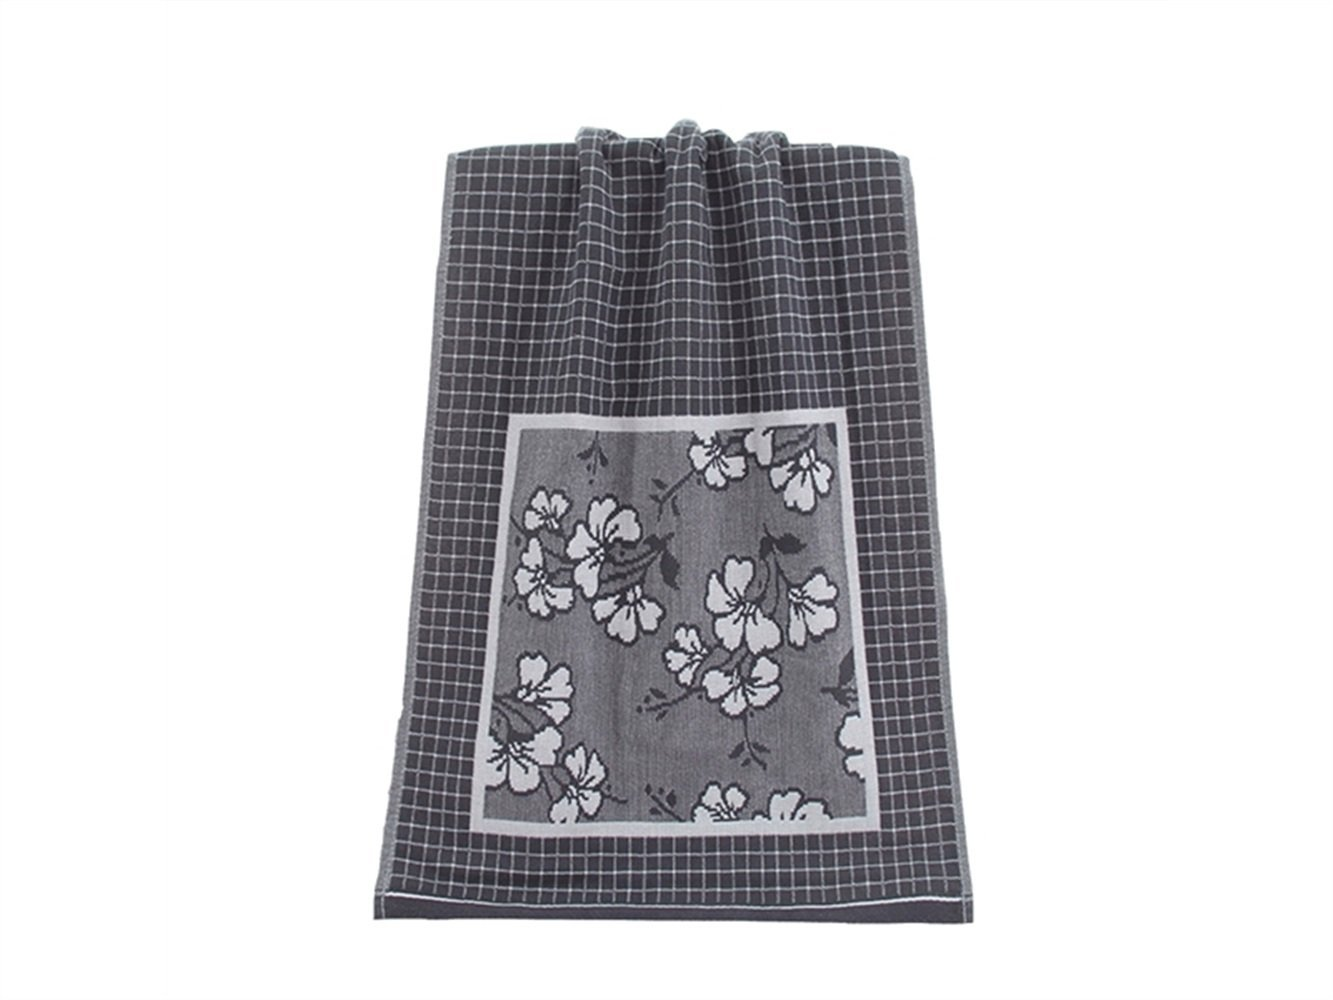 Wesource Activates Plaid Flower Adult Cotton Gauze Wash Face Towel Couple Absorbent Household Wiping Hand Towel(Grey)